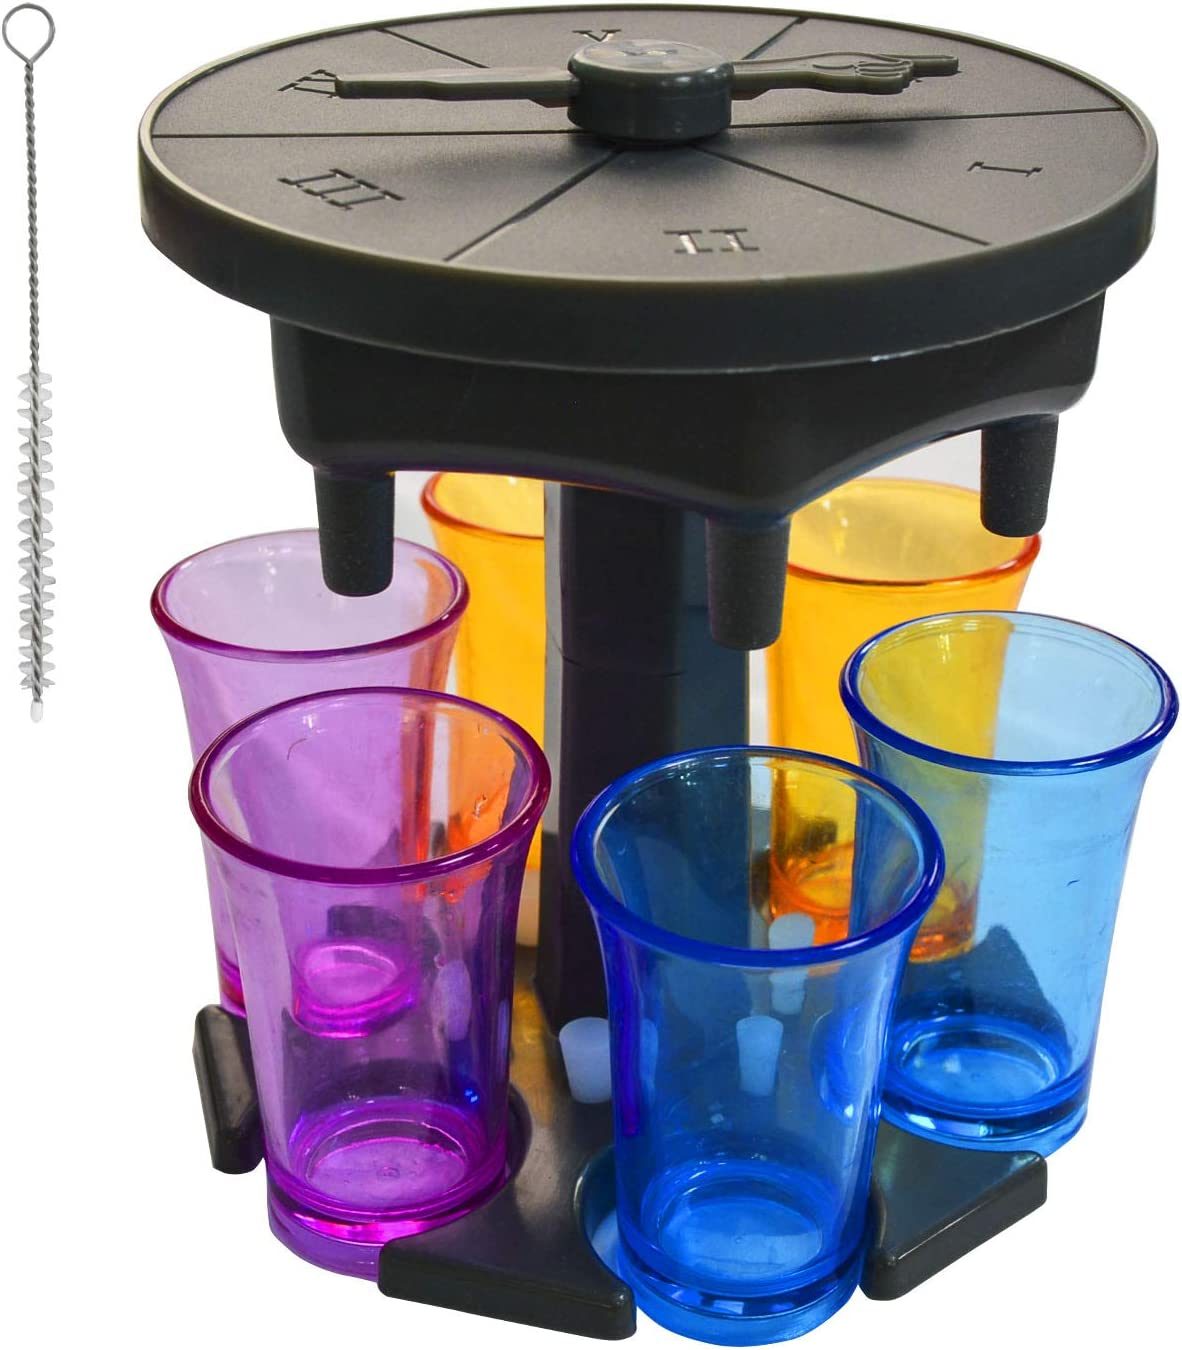 6 Shot Glass Dispenser and Holder with Game Turntable, Drink Dispenser Carrier Liquor Dispenser Wine Beverage Drinking Game for Bar Cocktail Party with 6 Plugs and 1 Cleaning Brush(Gray)